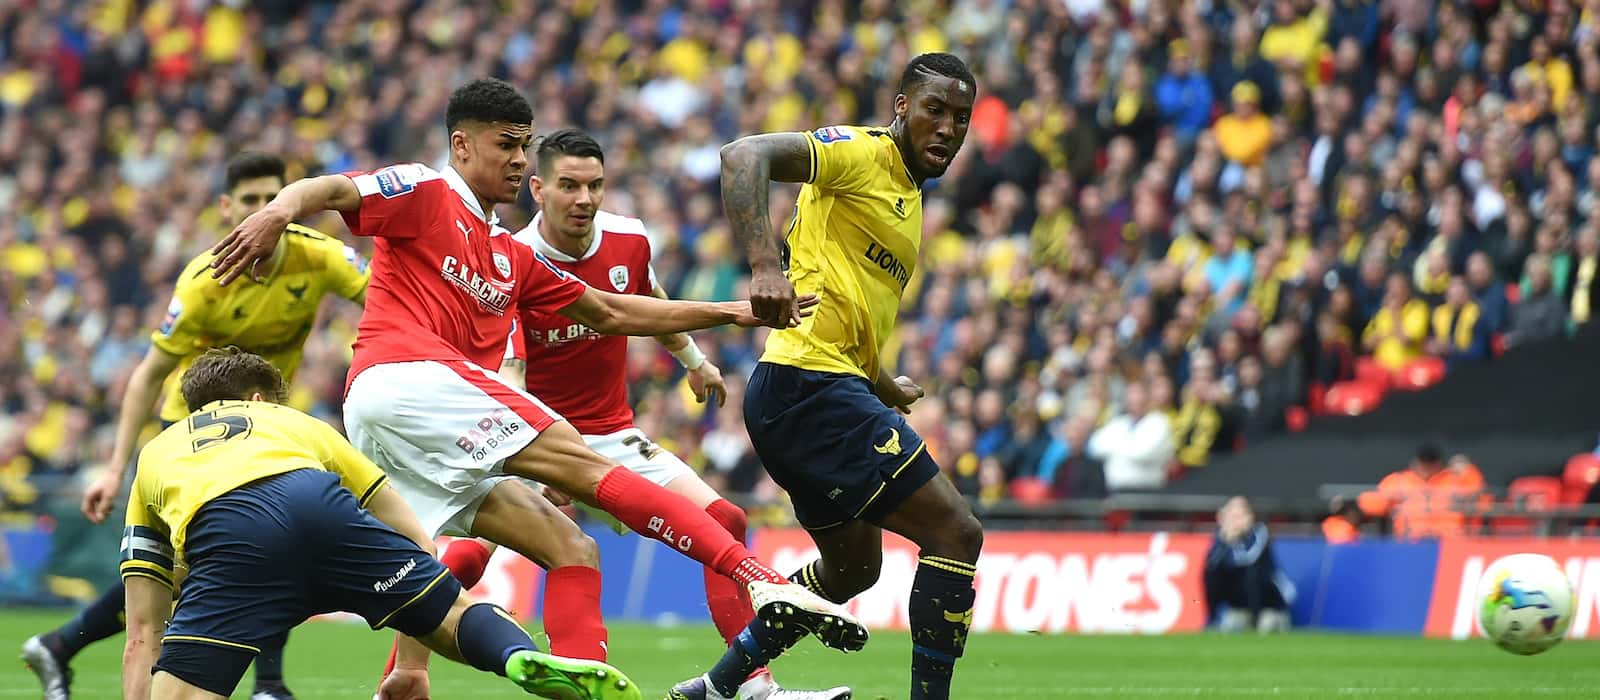 Ashley Fletcher explains why he had to leave Manchester United